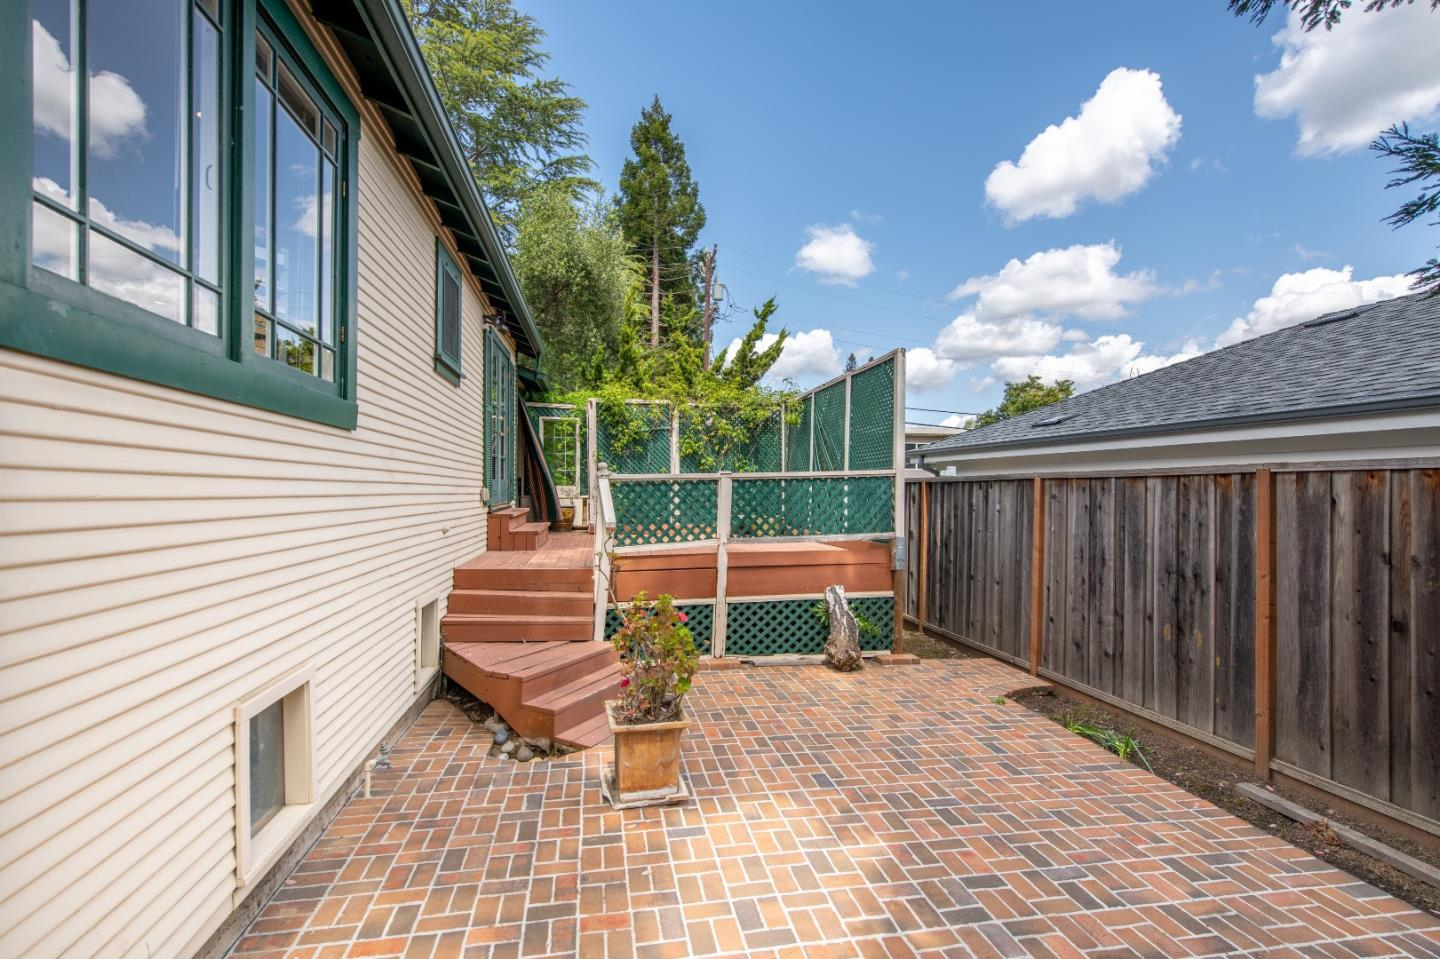 470 San Benito Avenue Los Gatos, CA 95030 - MLS #: ML81700964